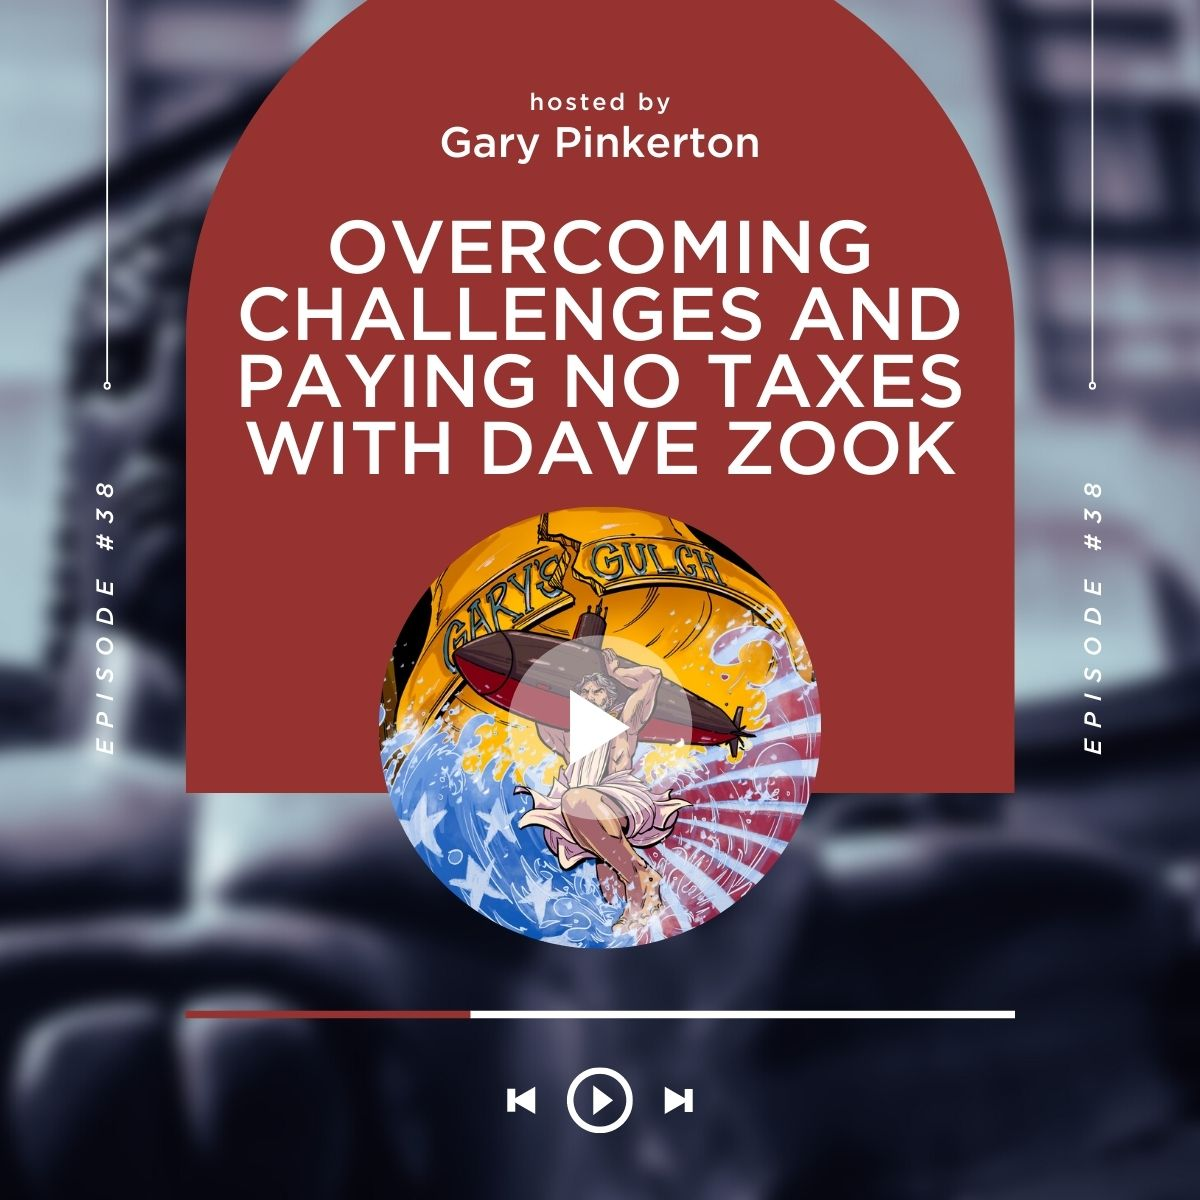 Overcoming Challenges and Paying No Taxes with Dave Zook show art